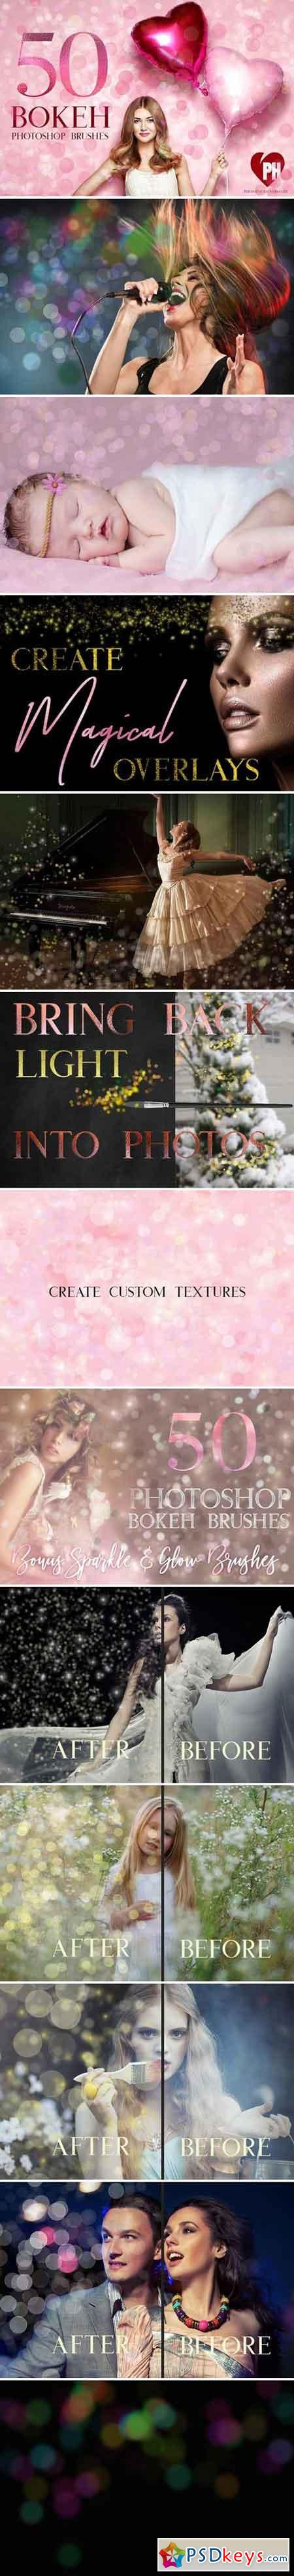 50 Bokeh Photoshop Brushes 2256422